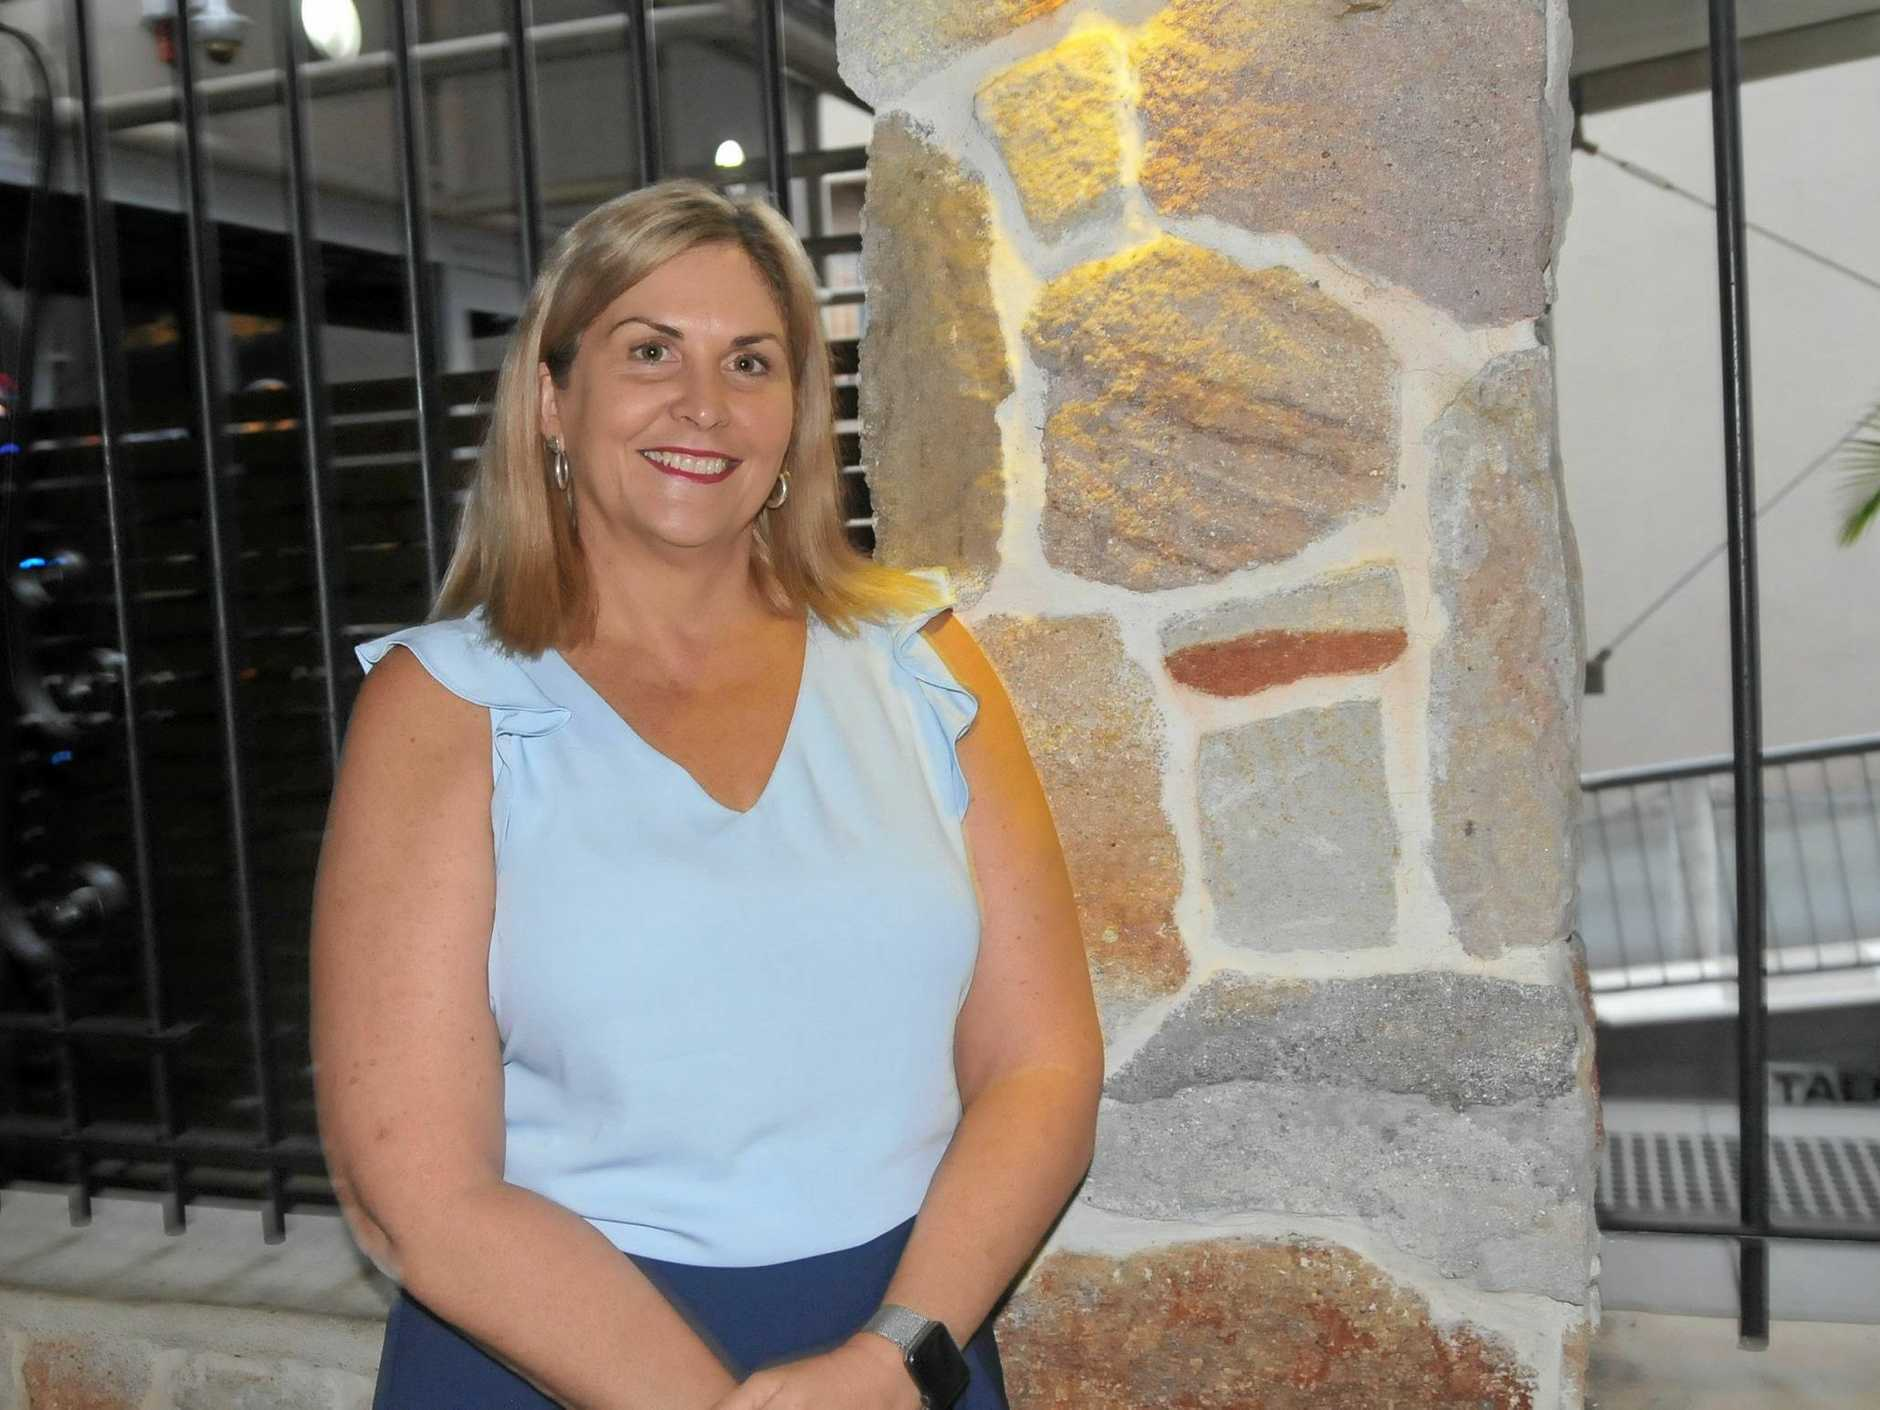 Jellina White celebrates 10 years at the top of Gympie's Bank of Queensland.